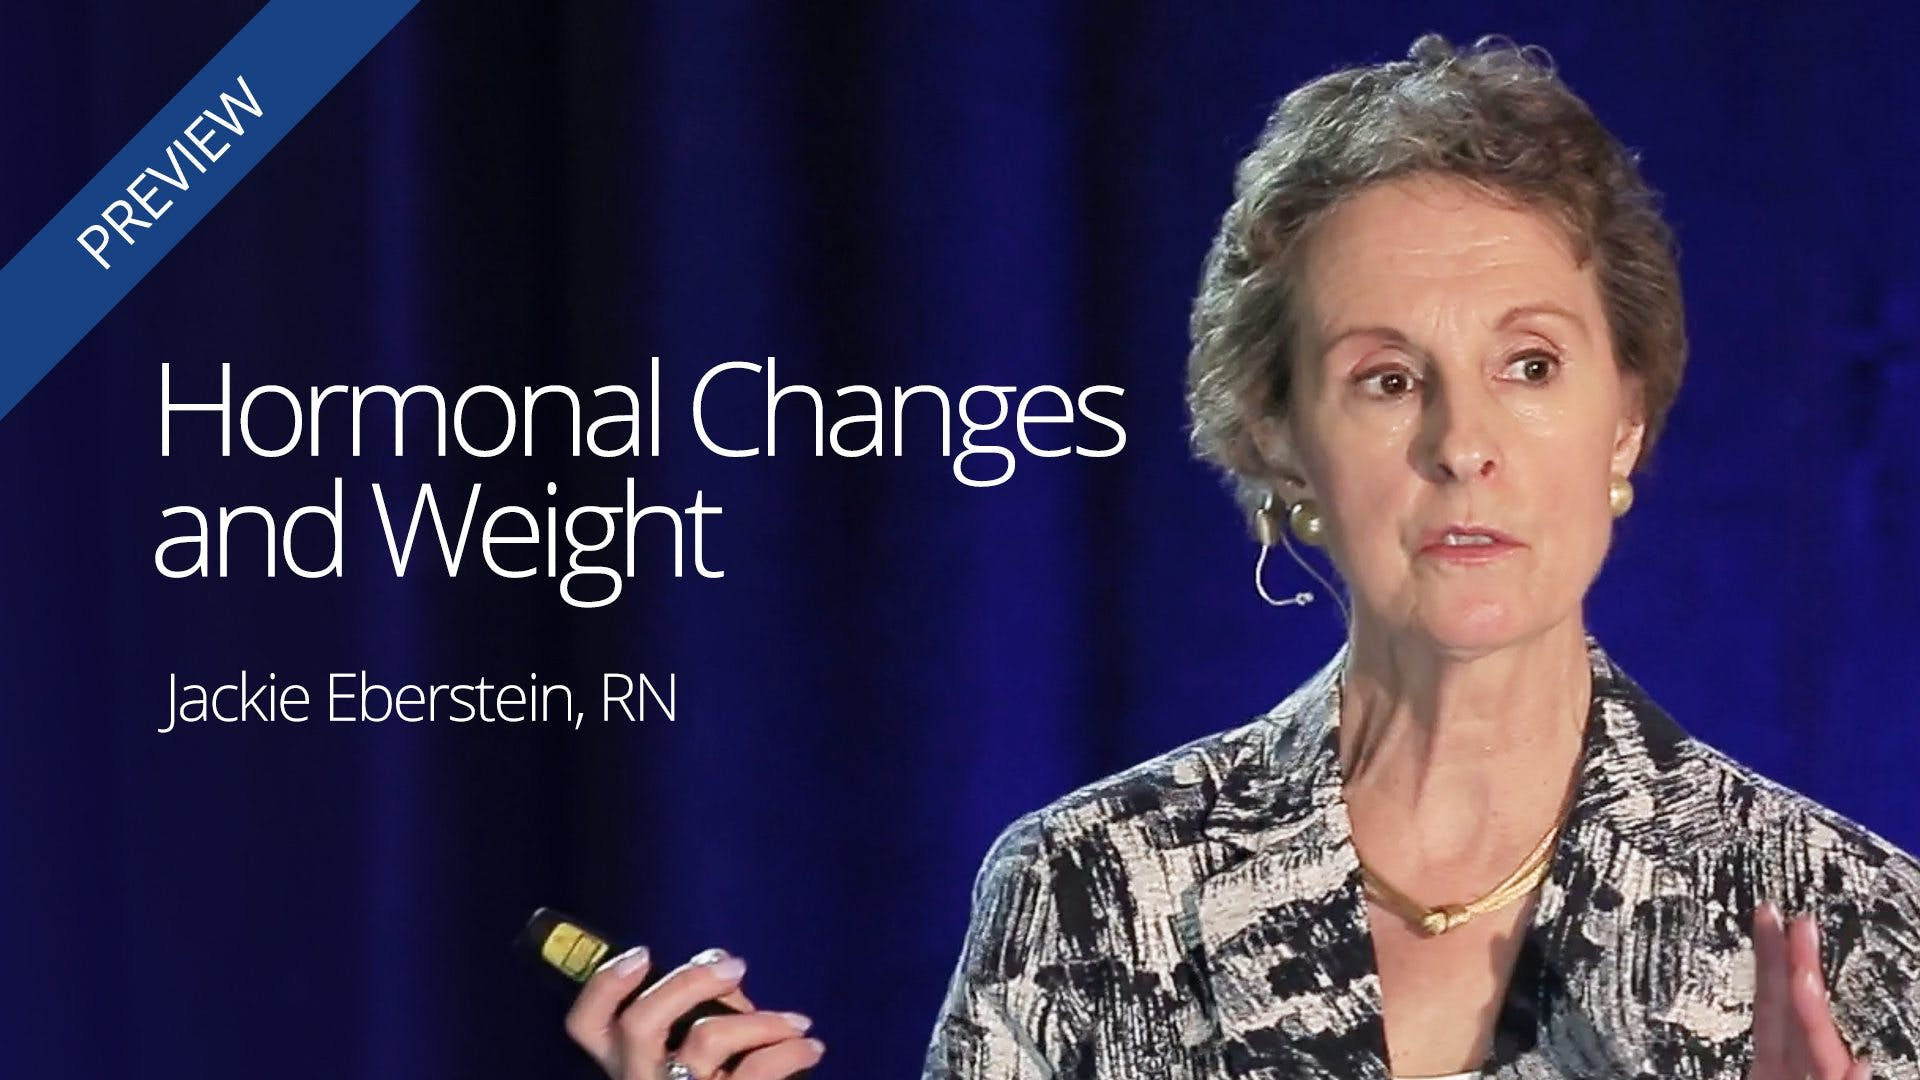 Can Women's <strong>Weight Struggles</strong> Be Caused by Hormones?